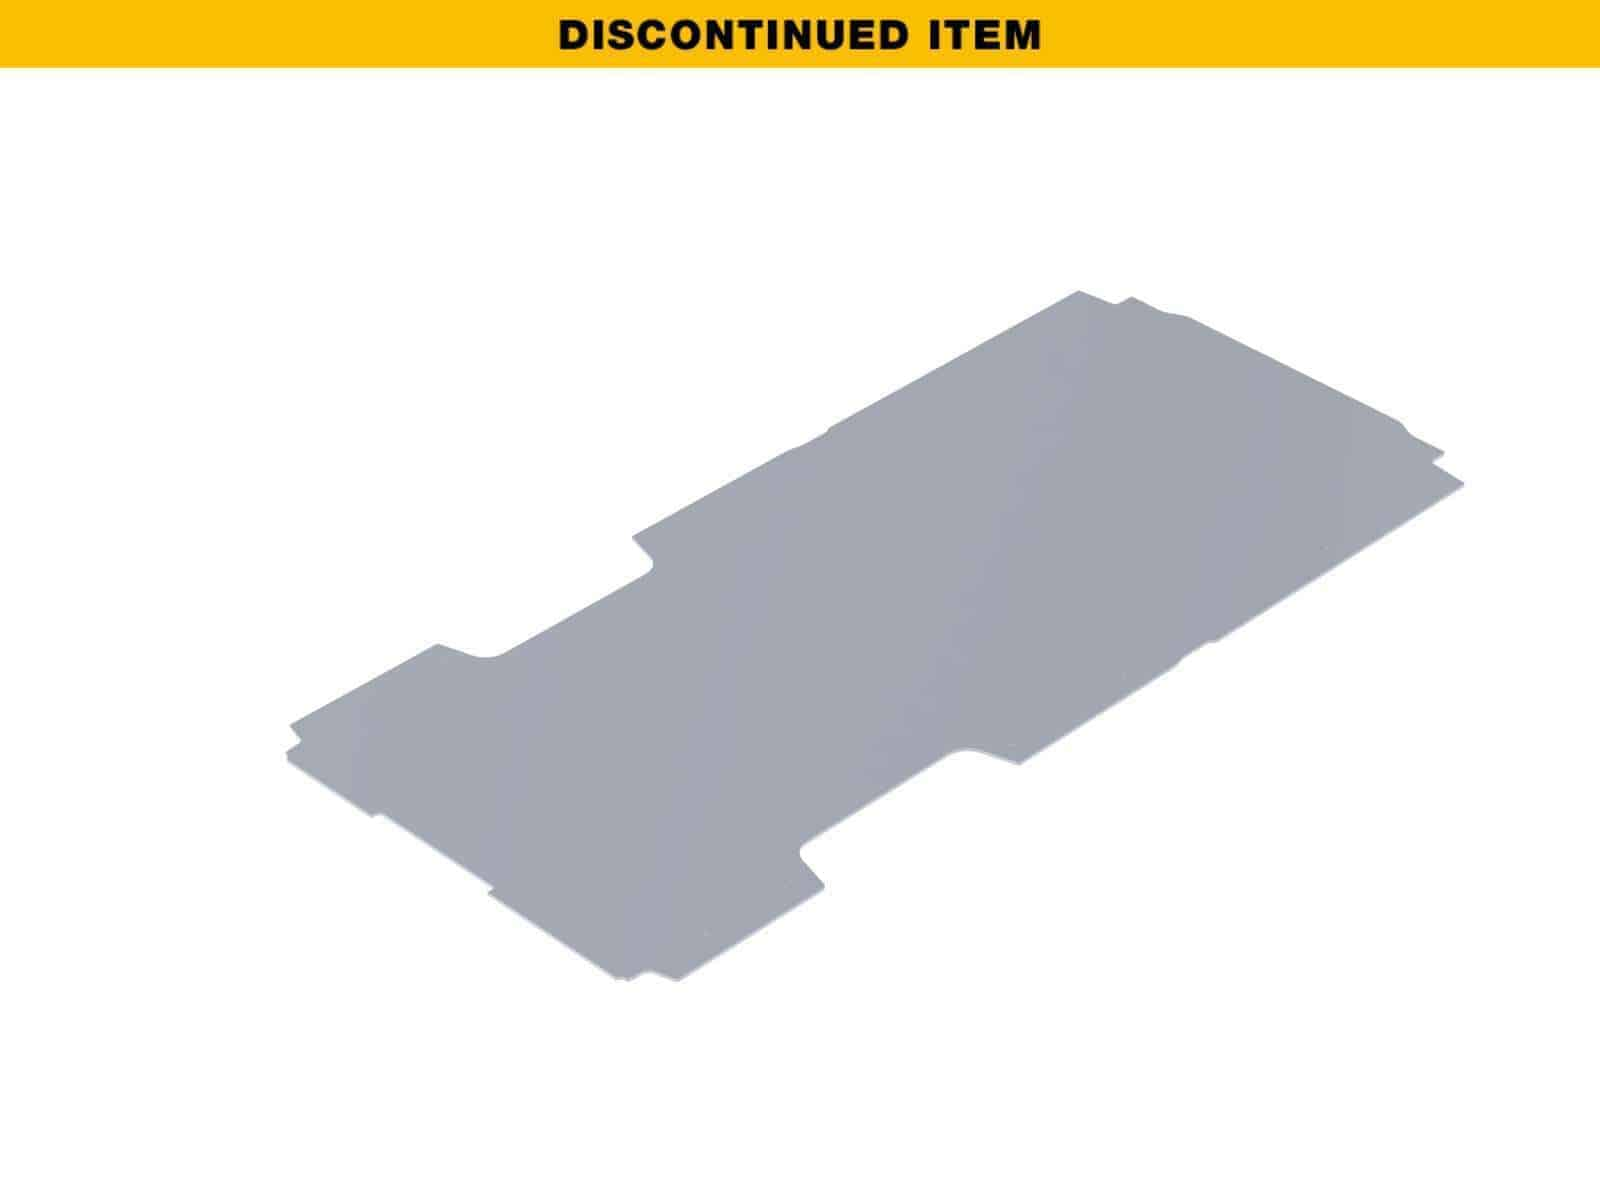 HD-Ultragrip-Van-Floor-Liner-ProMaster-159-Ext-6523-discontinued